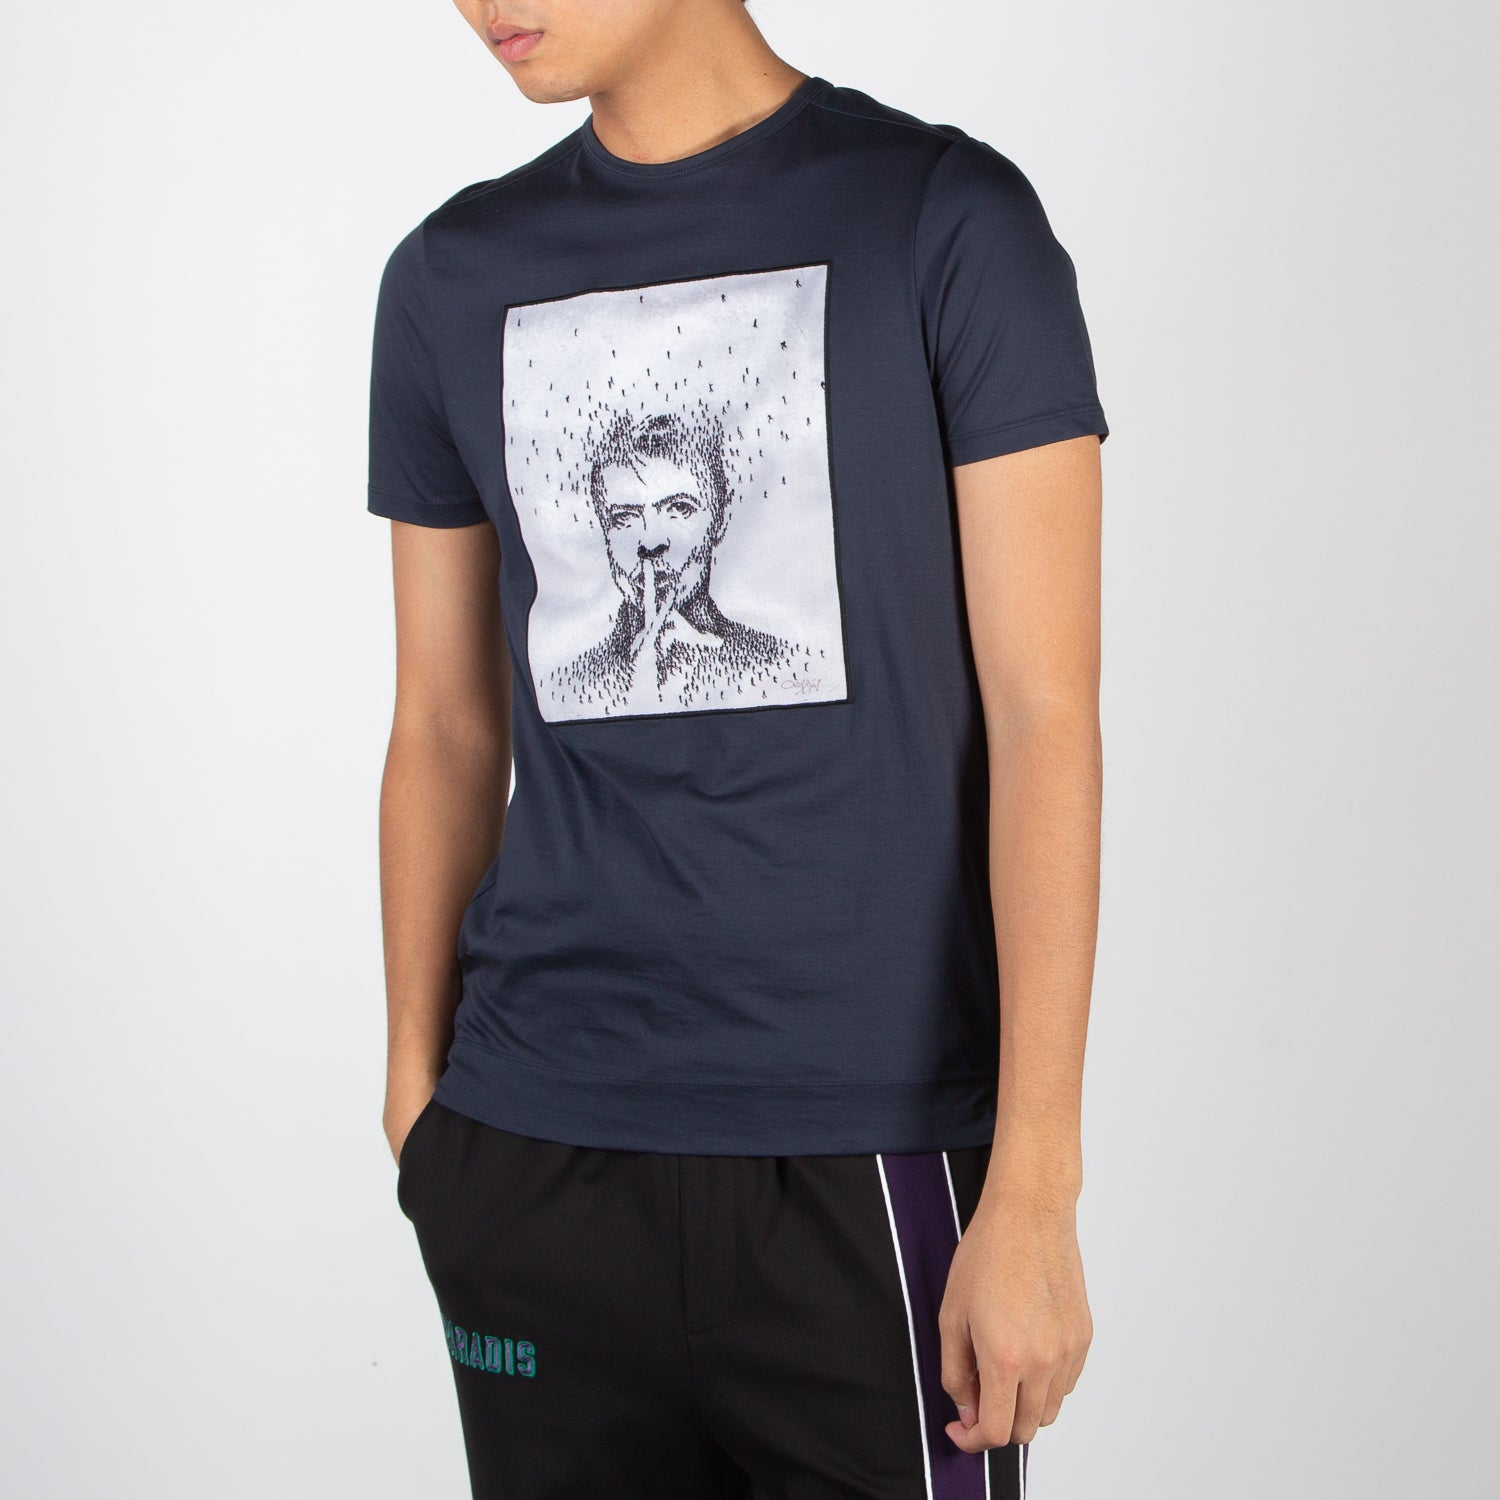 Printed David Bowie navy t-shirt captured by Craig Alan by Limitato at Secret Location